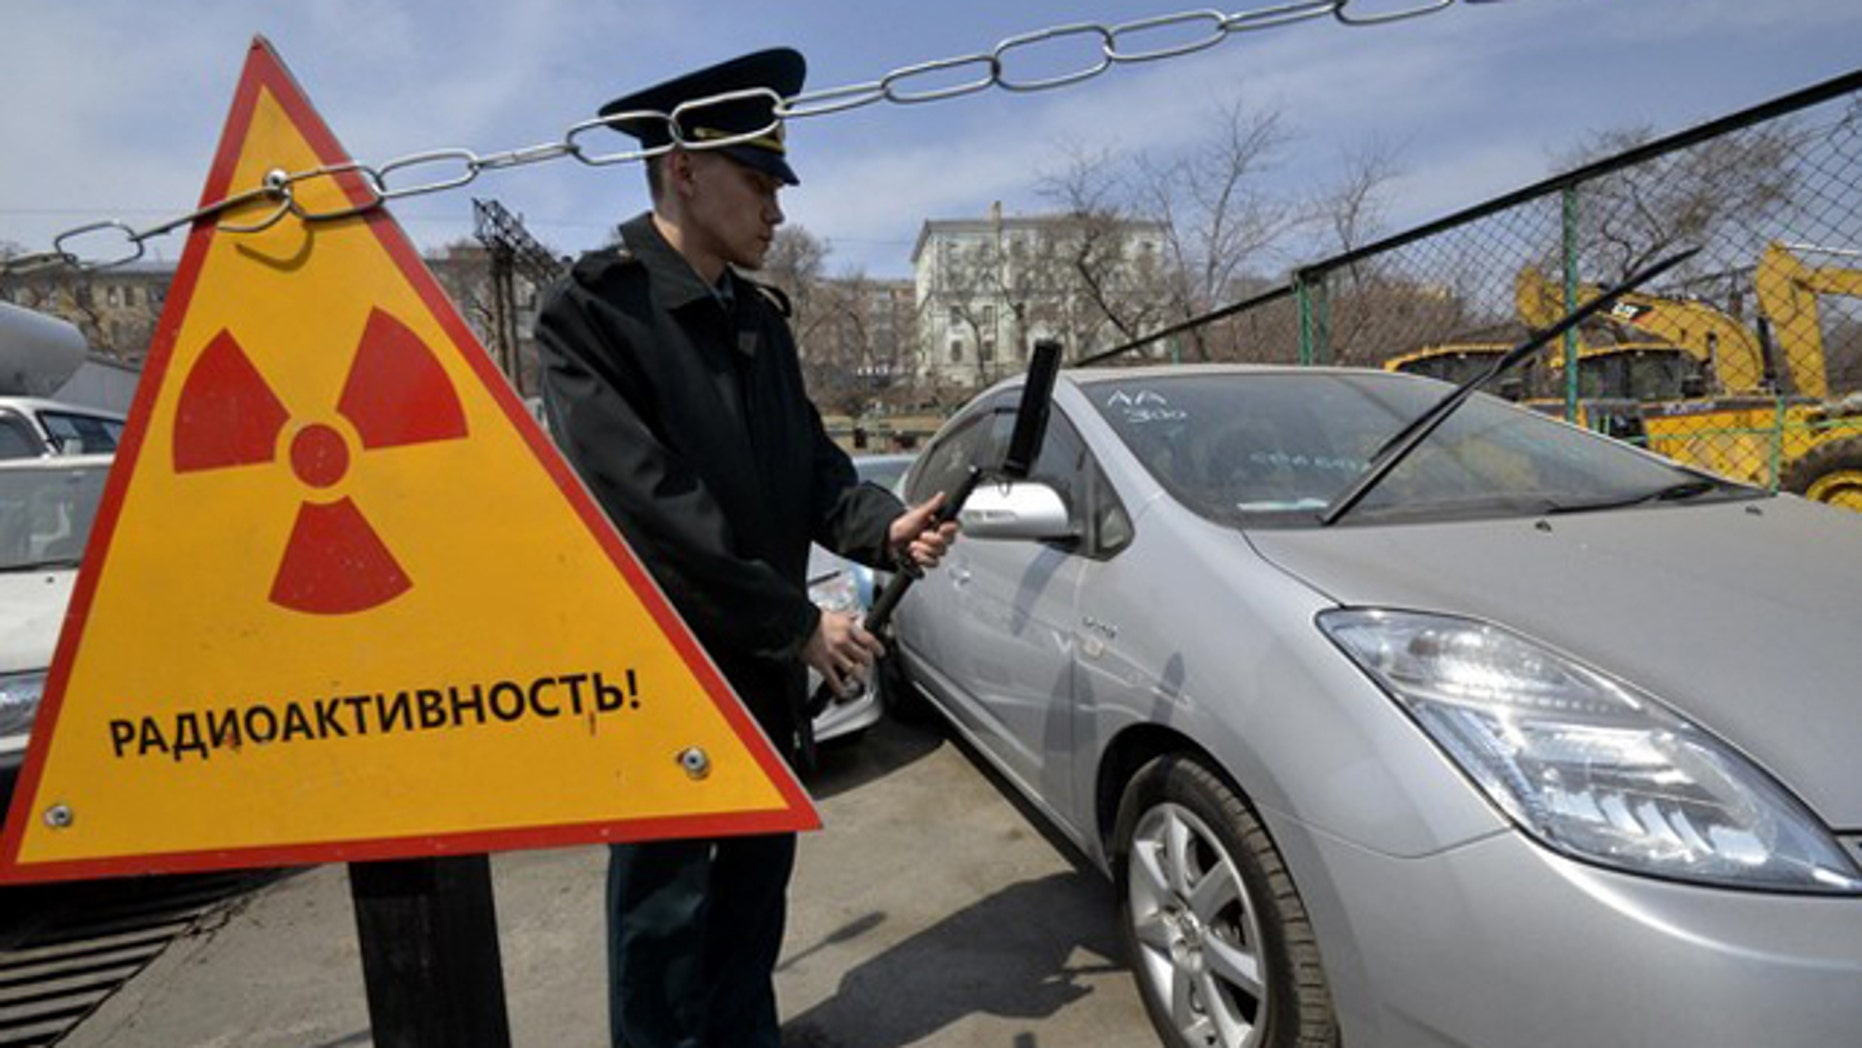 "A customs officer measures the radiation level of an automobile delivered from Japan, in Russia's far eastern city of Vladivostok April 14, 2011. About 300 cars and other vehicles are delivered from neighbouring Japan to the port. Radioactive background has been revealed in 49 vehicles lately. These machines will be kept in the port until the Russian Federal Service on Customers' Rights makes a decision on their fate, Russian customs officers said. The sign reads ""Radioactivity""."